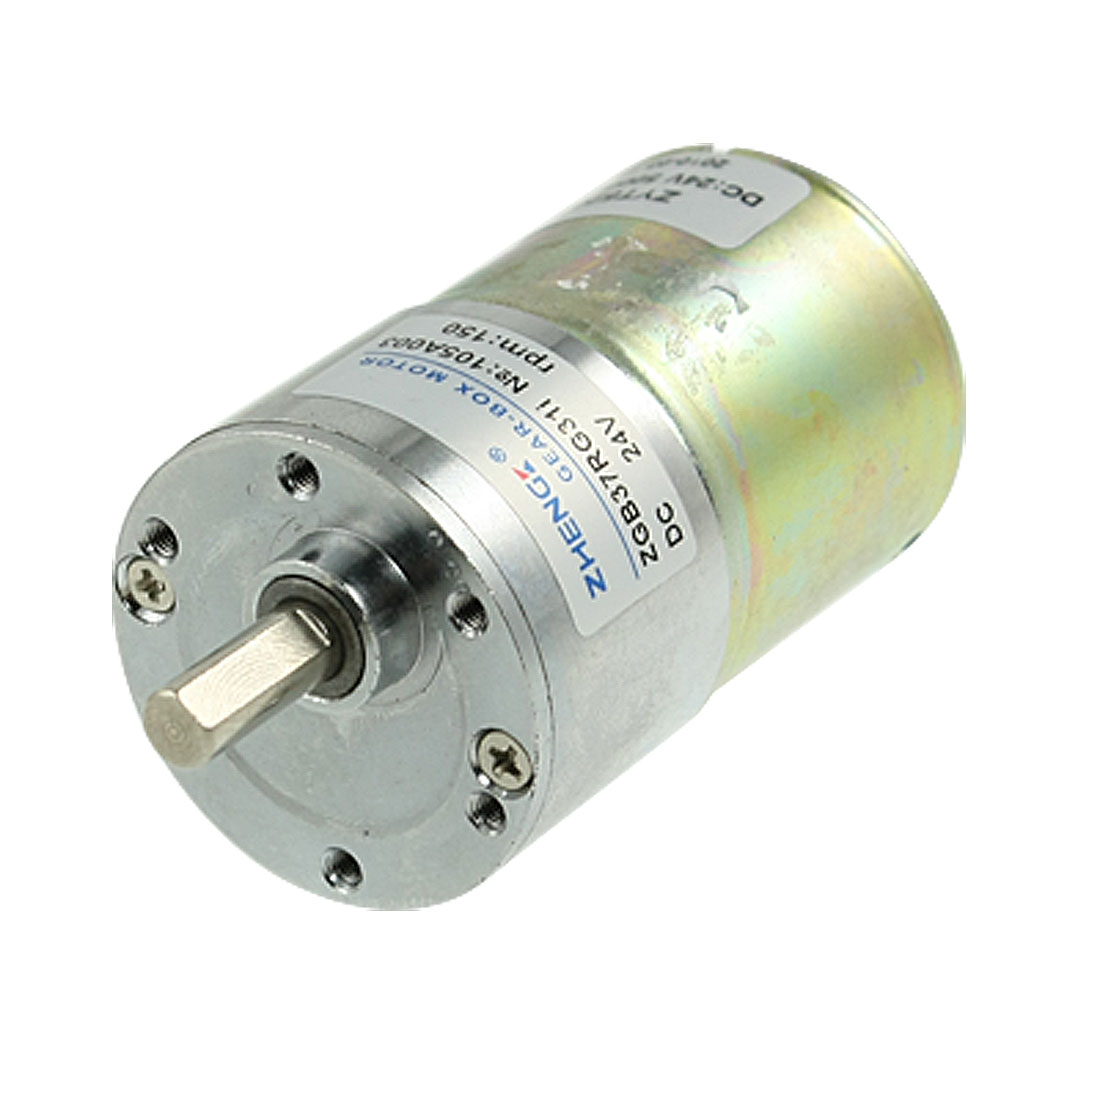 Uxcell(R) 150RPM 10.8kg.cm 24V 0.33A Speed Reducing DC Geared Motor